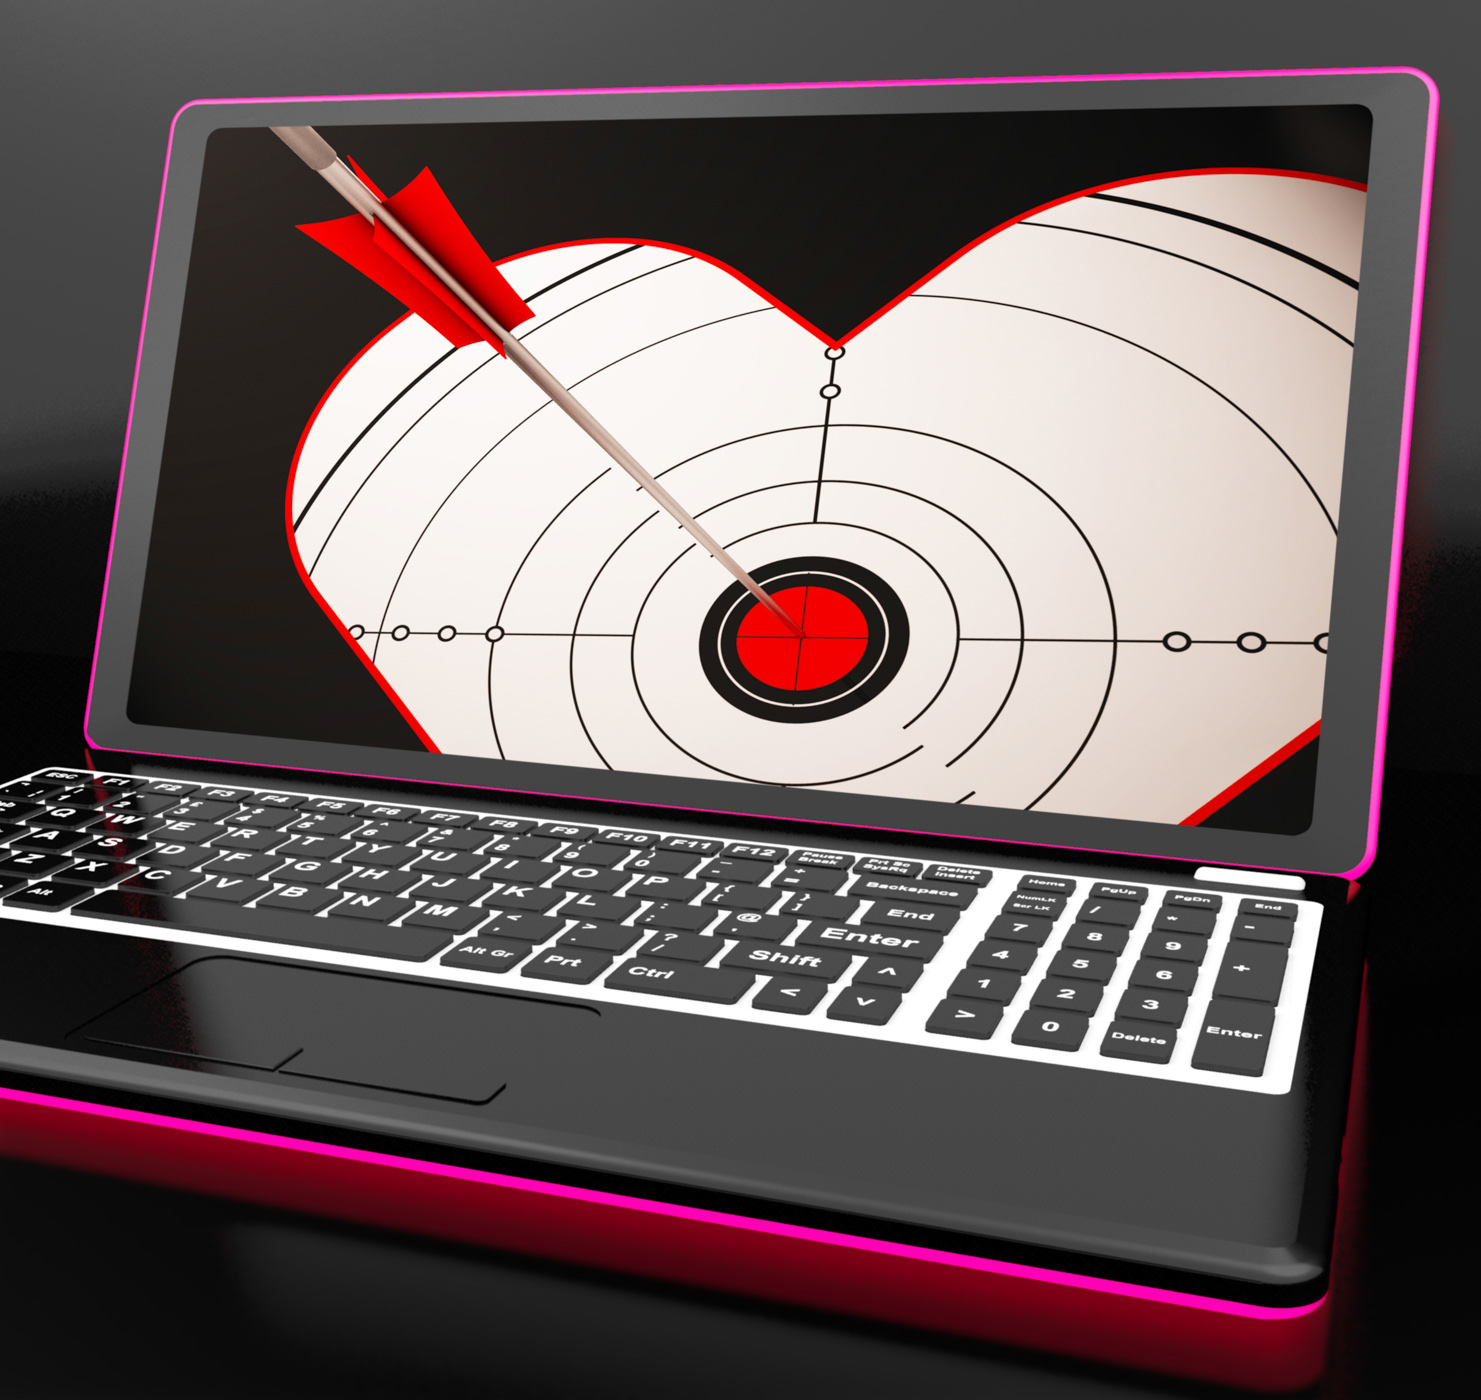 Target Heart On Laptop Shows Flirting, Accuracy, Laptop, Valentineday, Valentine, HQ Photo